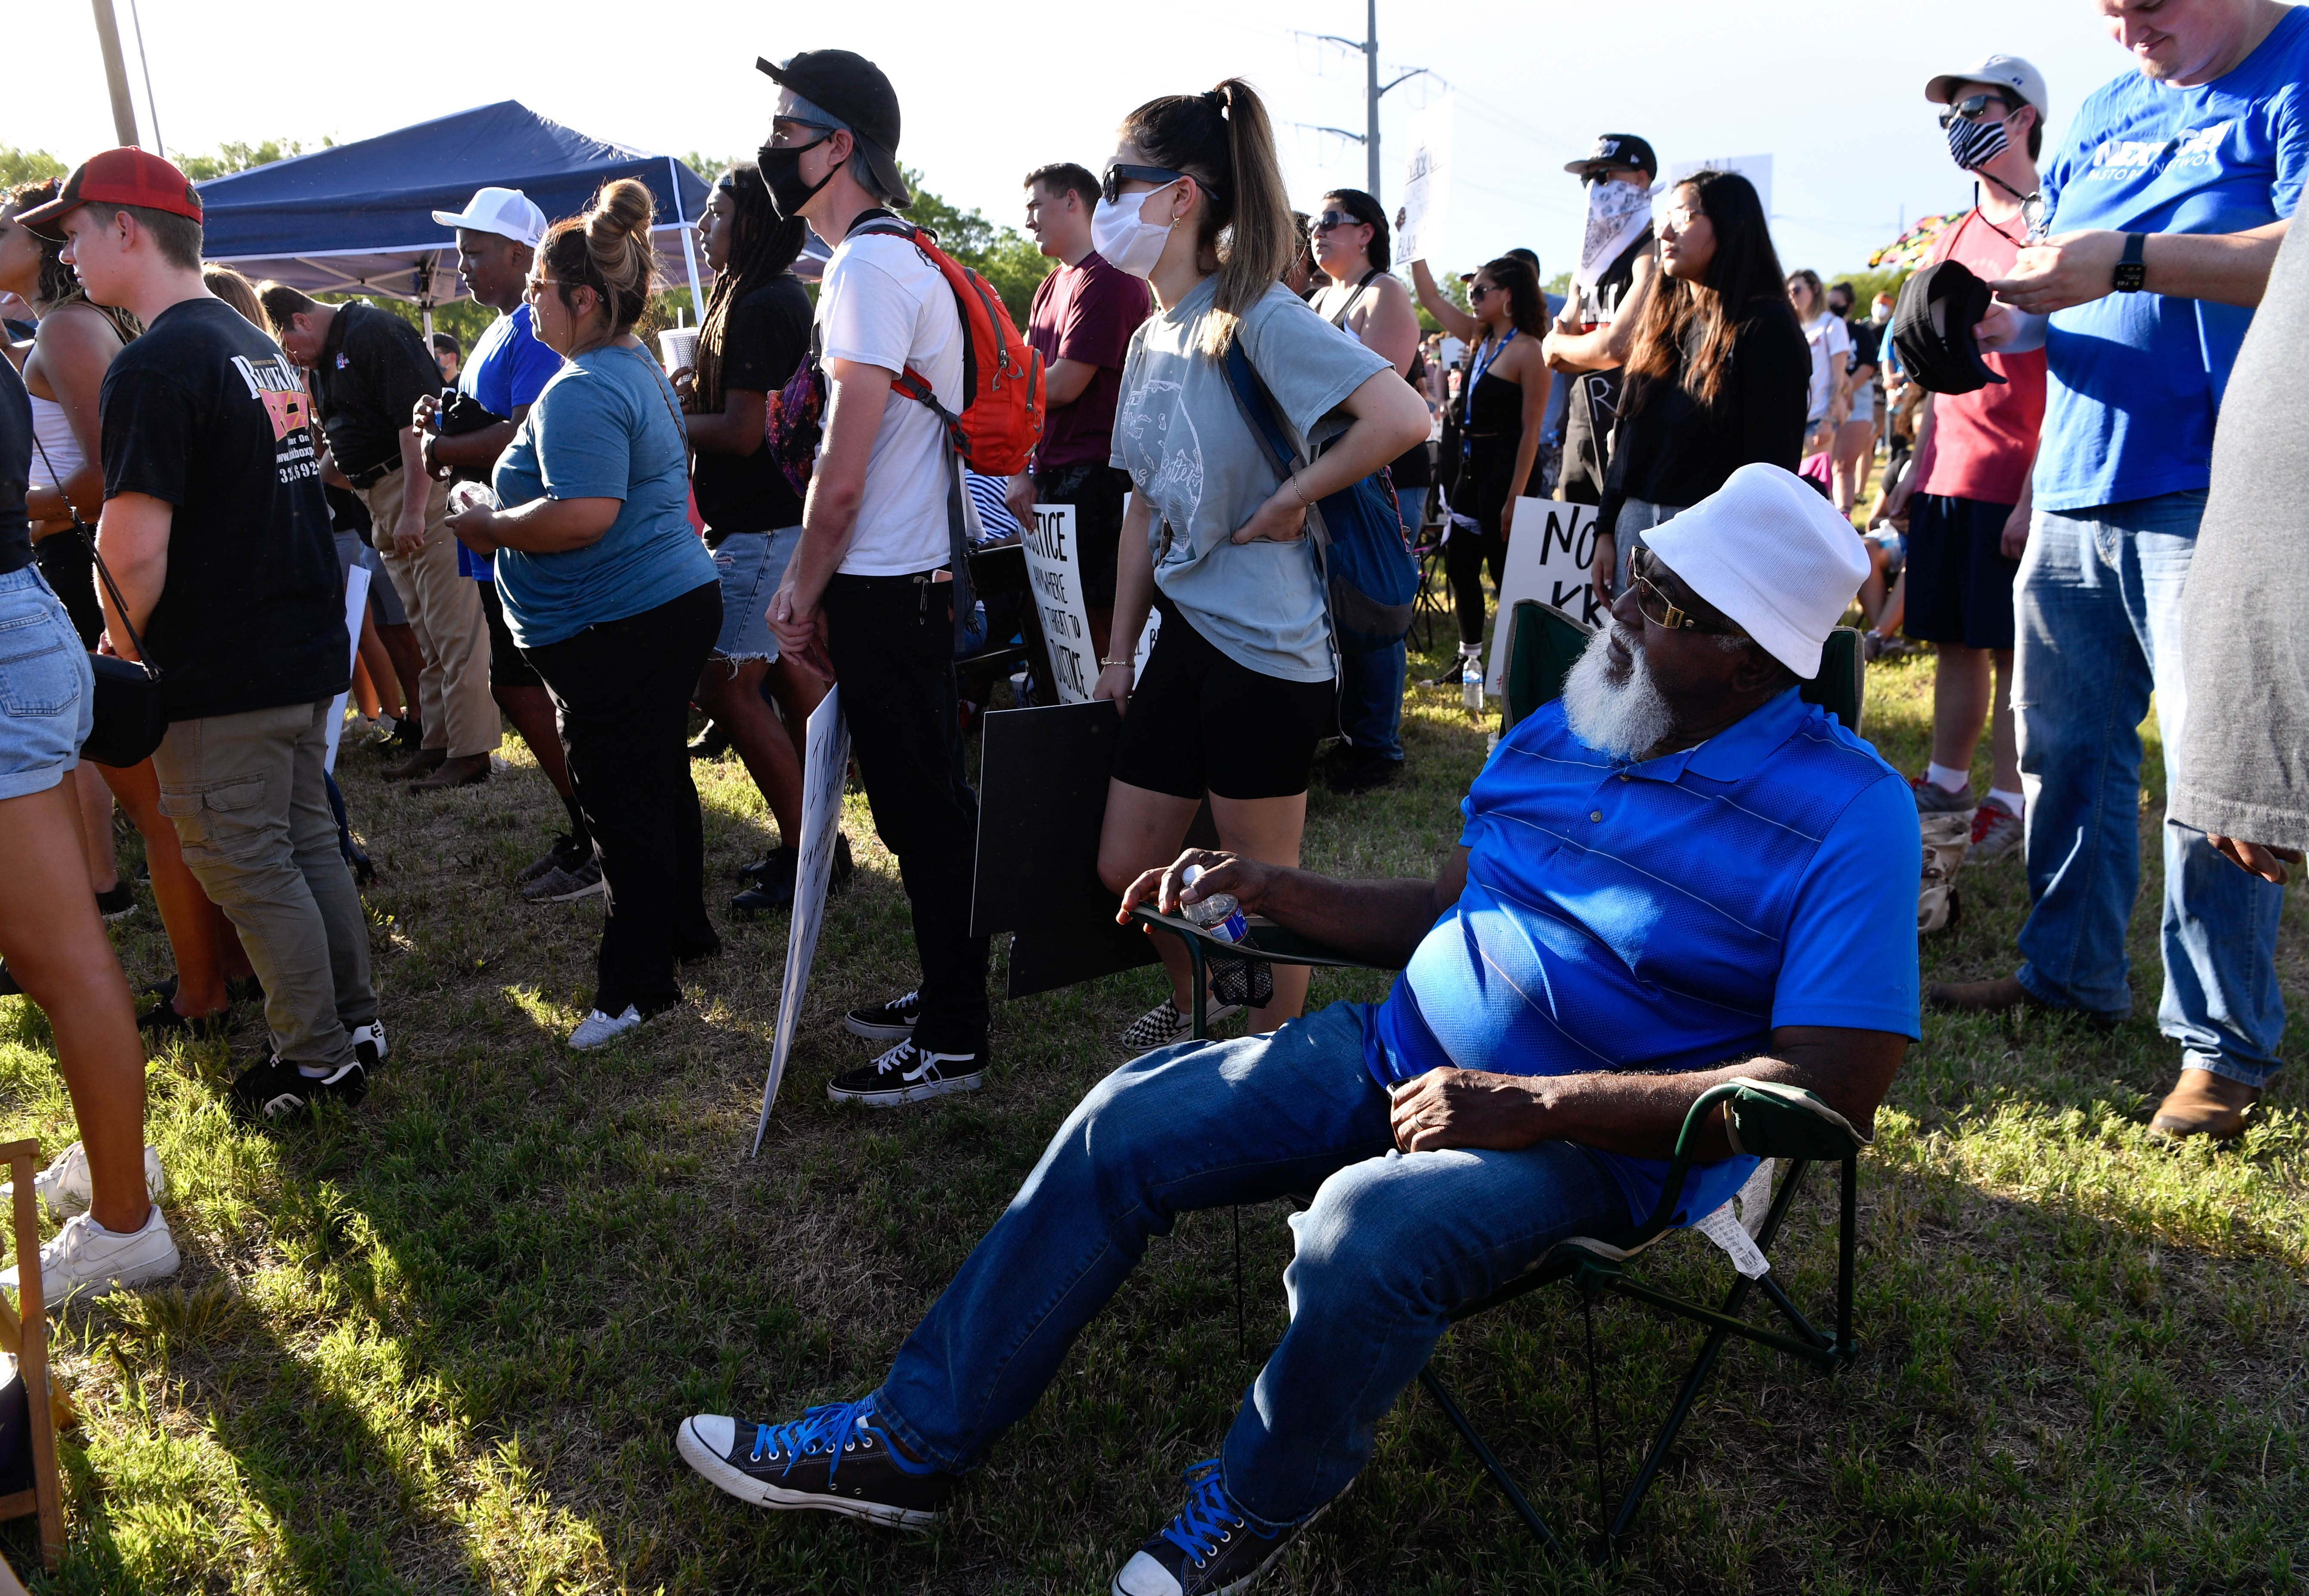 James Jones listens to the speakers during Thursday's rally June 4, 2020. At least 600 gathered in the park near the Martin Luther King Jr. sign on E. Highway 80 to protest racism and national acts of police brutality.